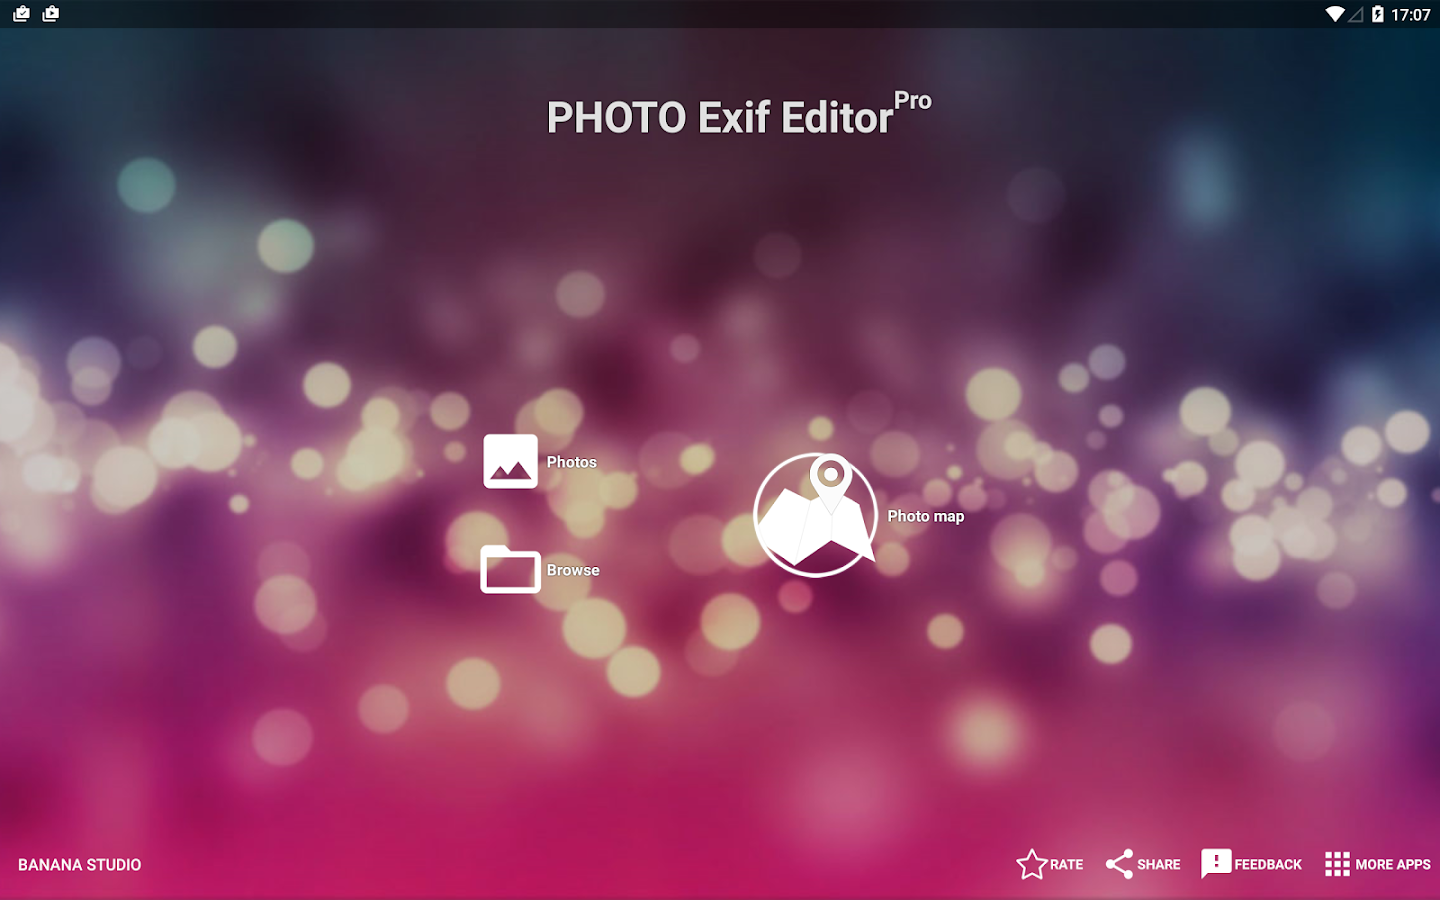 Photo Exif Editor Pro Screenshot 8